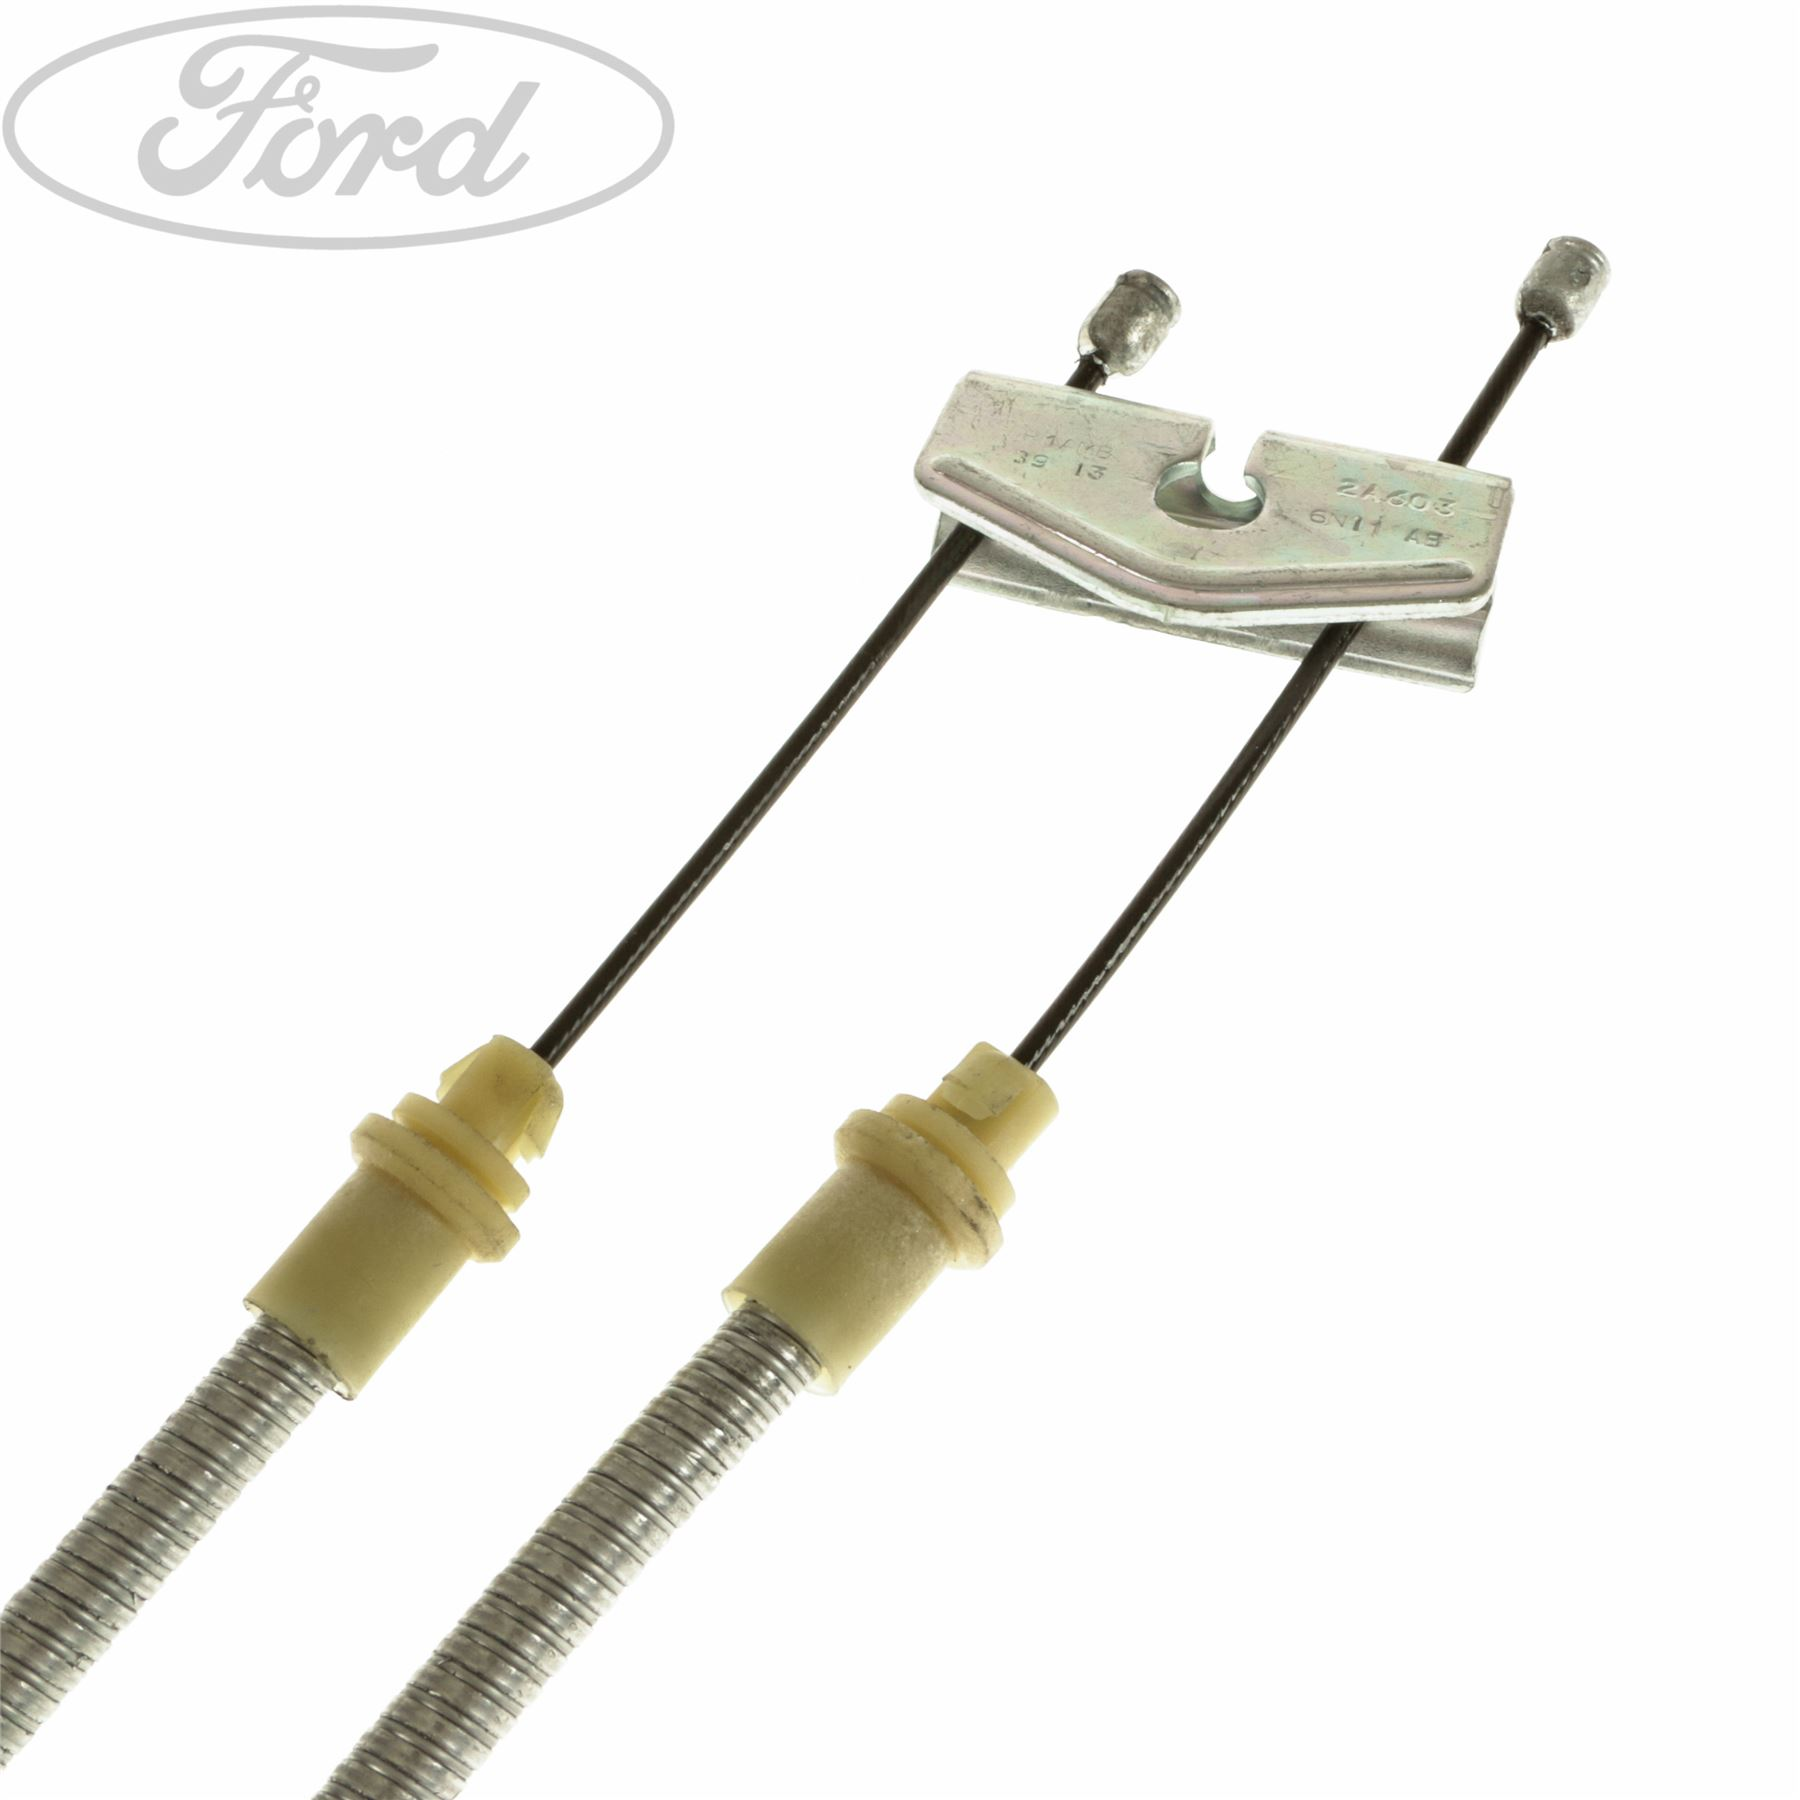 Handbrake Cable fits MAZDA 2 DY Centre 1.4 1.4D 03 to 07 Hand Brake Parking New